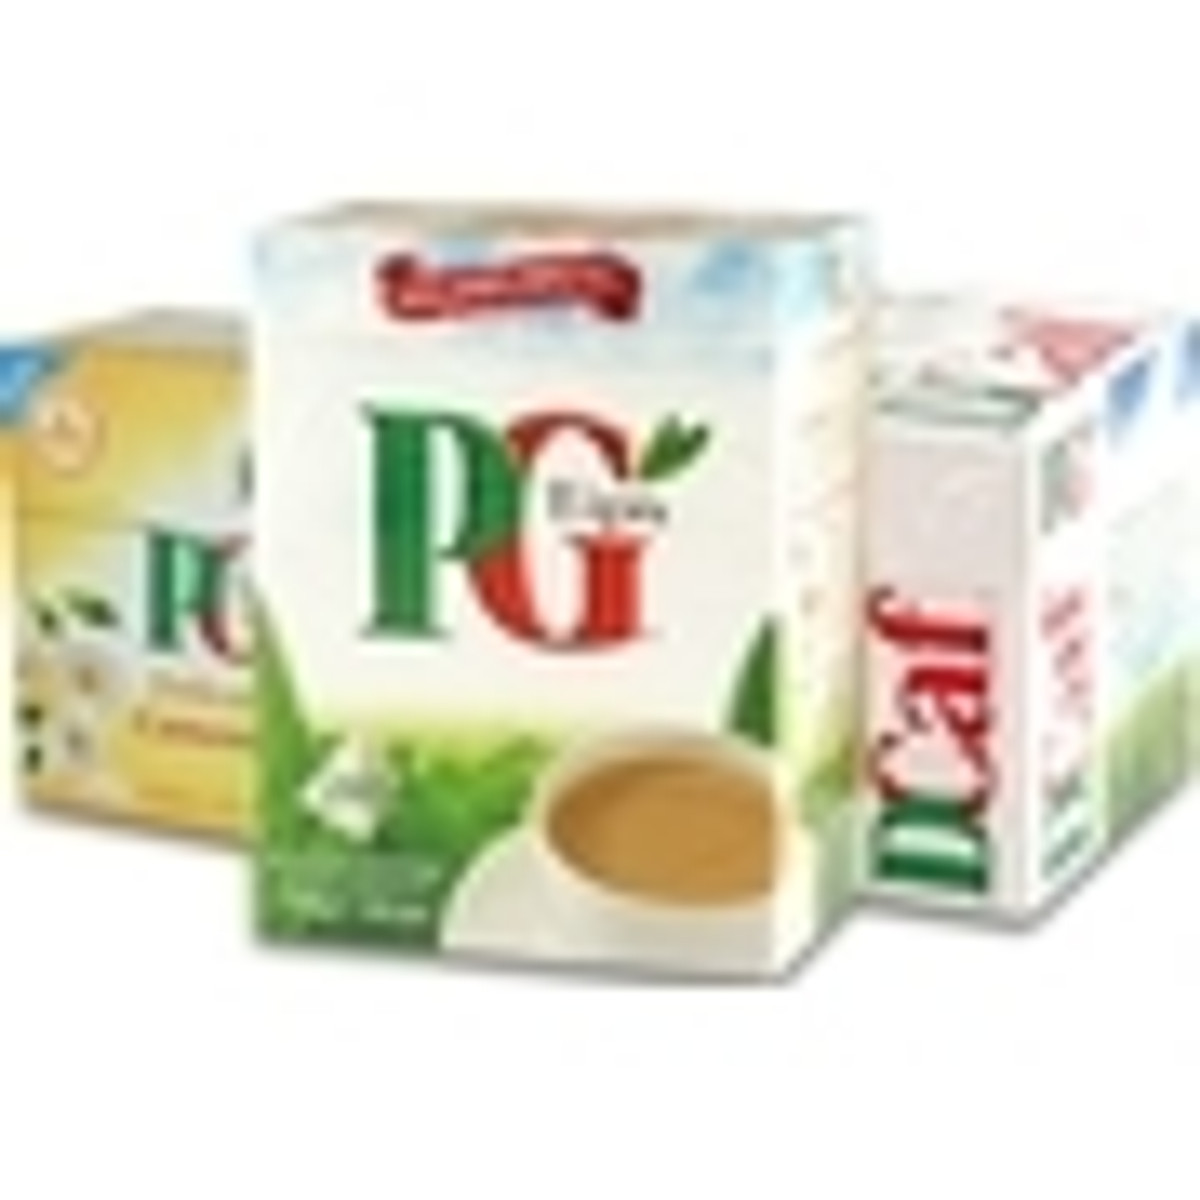 PG Tips - Iced Teabags